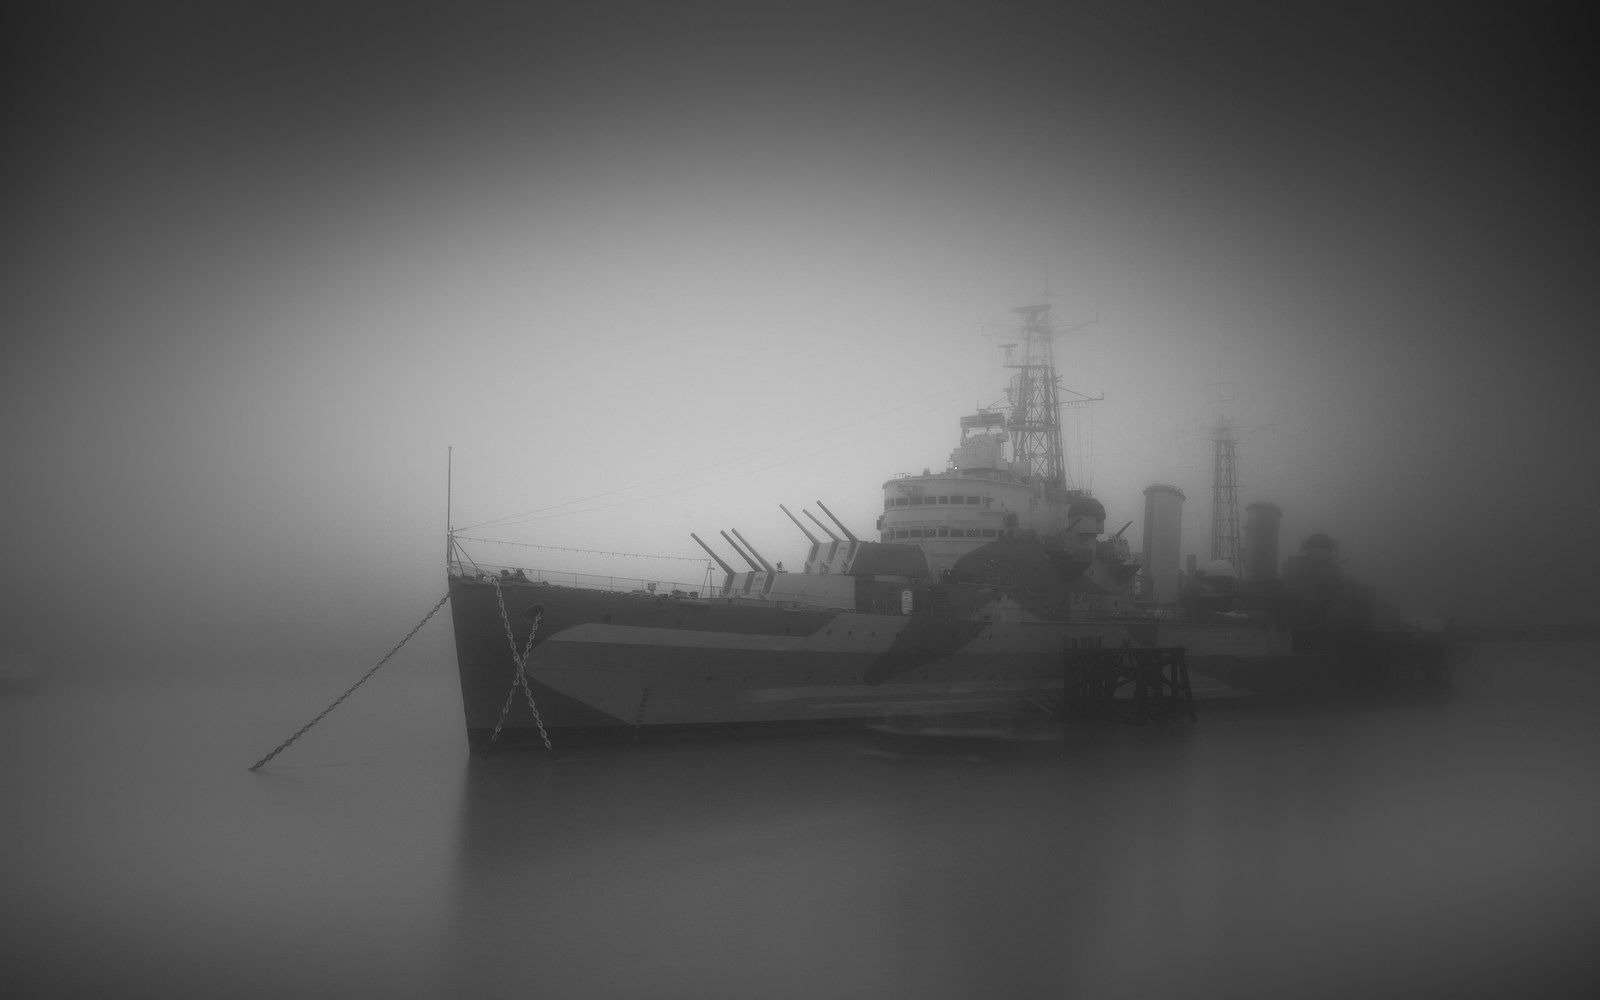 Ghost ship | by mike-mojopin